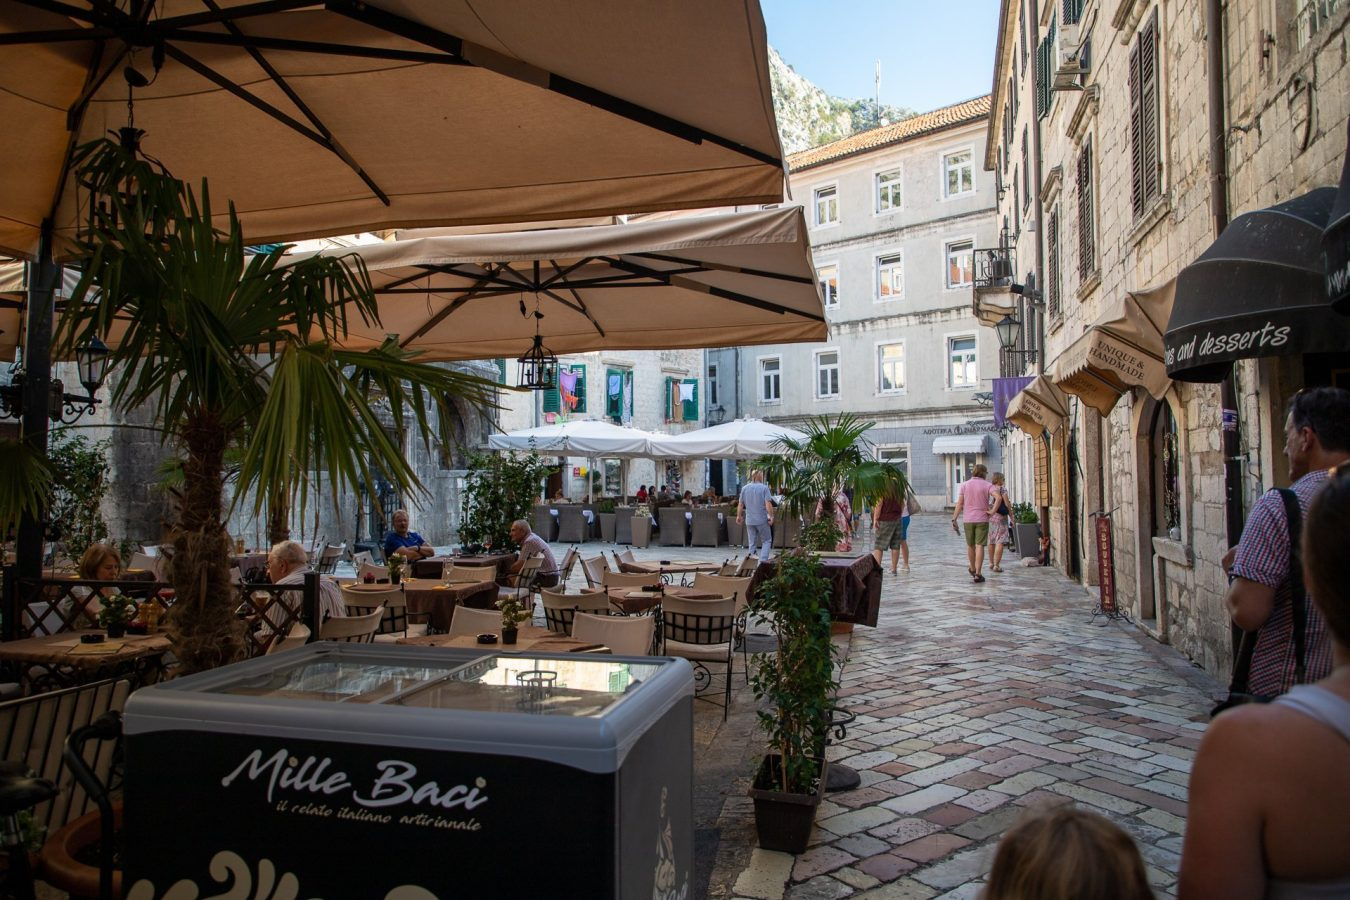 Another city filled with sidewalk cafes